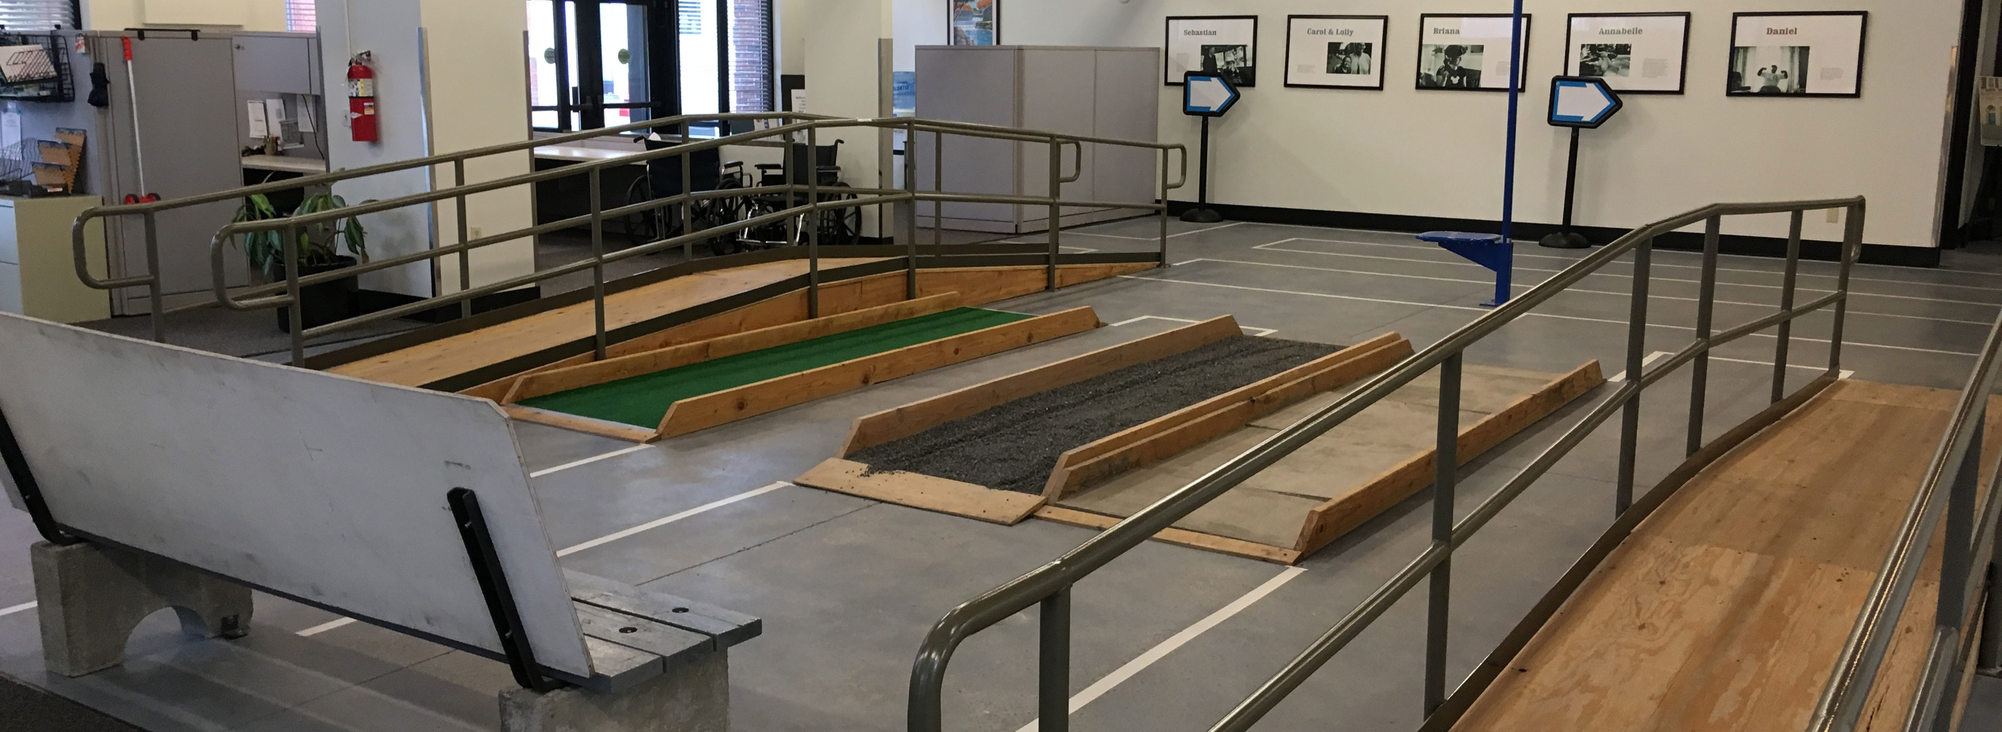 A mock-up setup of ramps, gravel and more at its Transit Mobility Center.